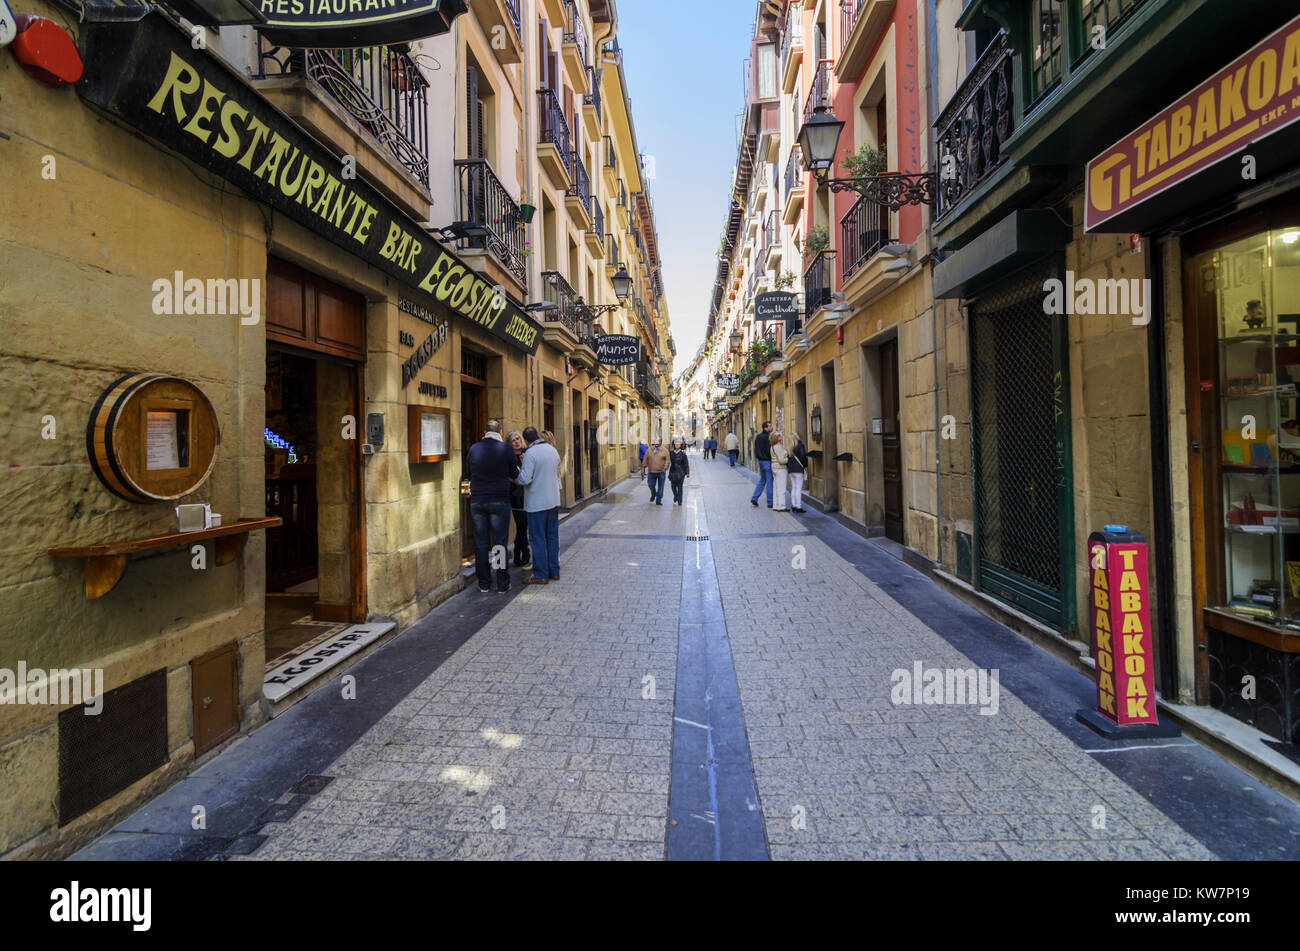 Old town street of Parte Vieja in San Sebastian, Gipuzkoa, Spain - Stock Image